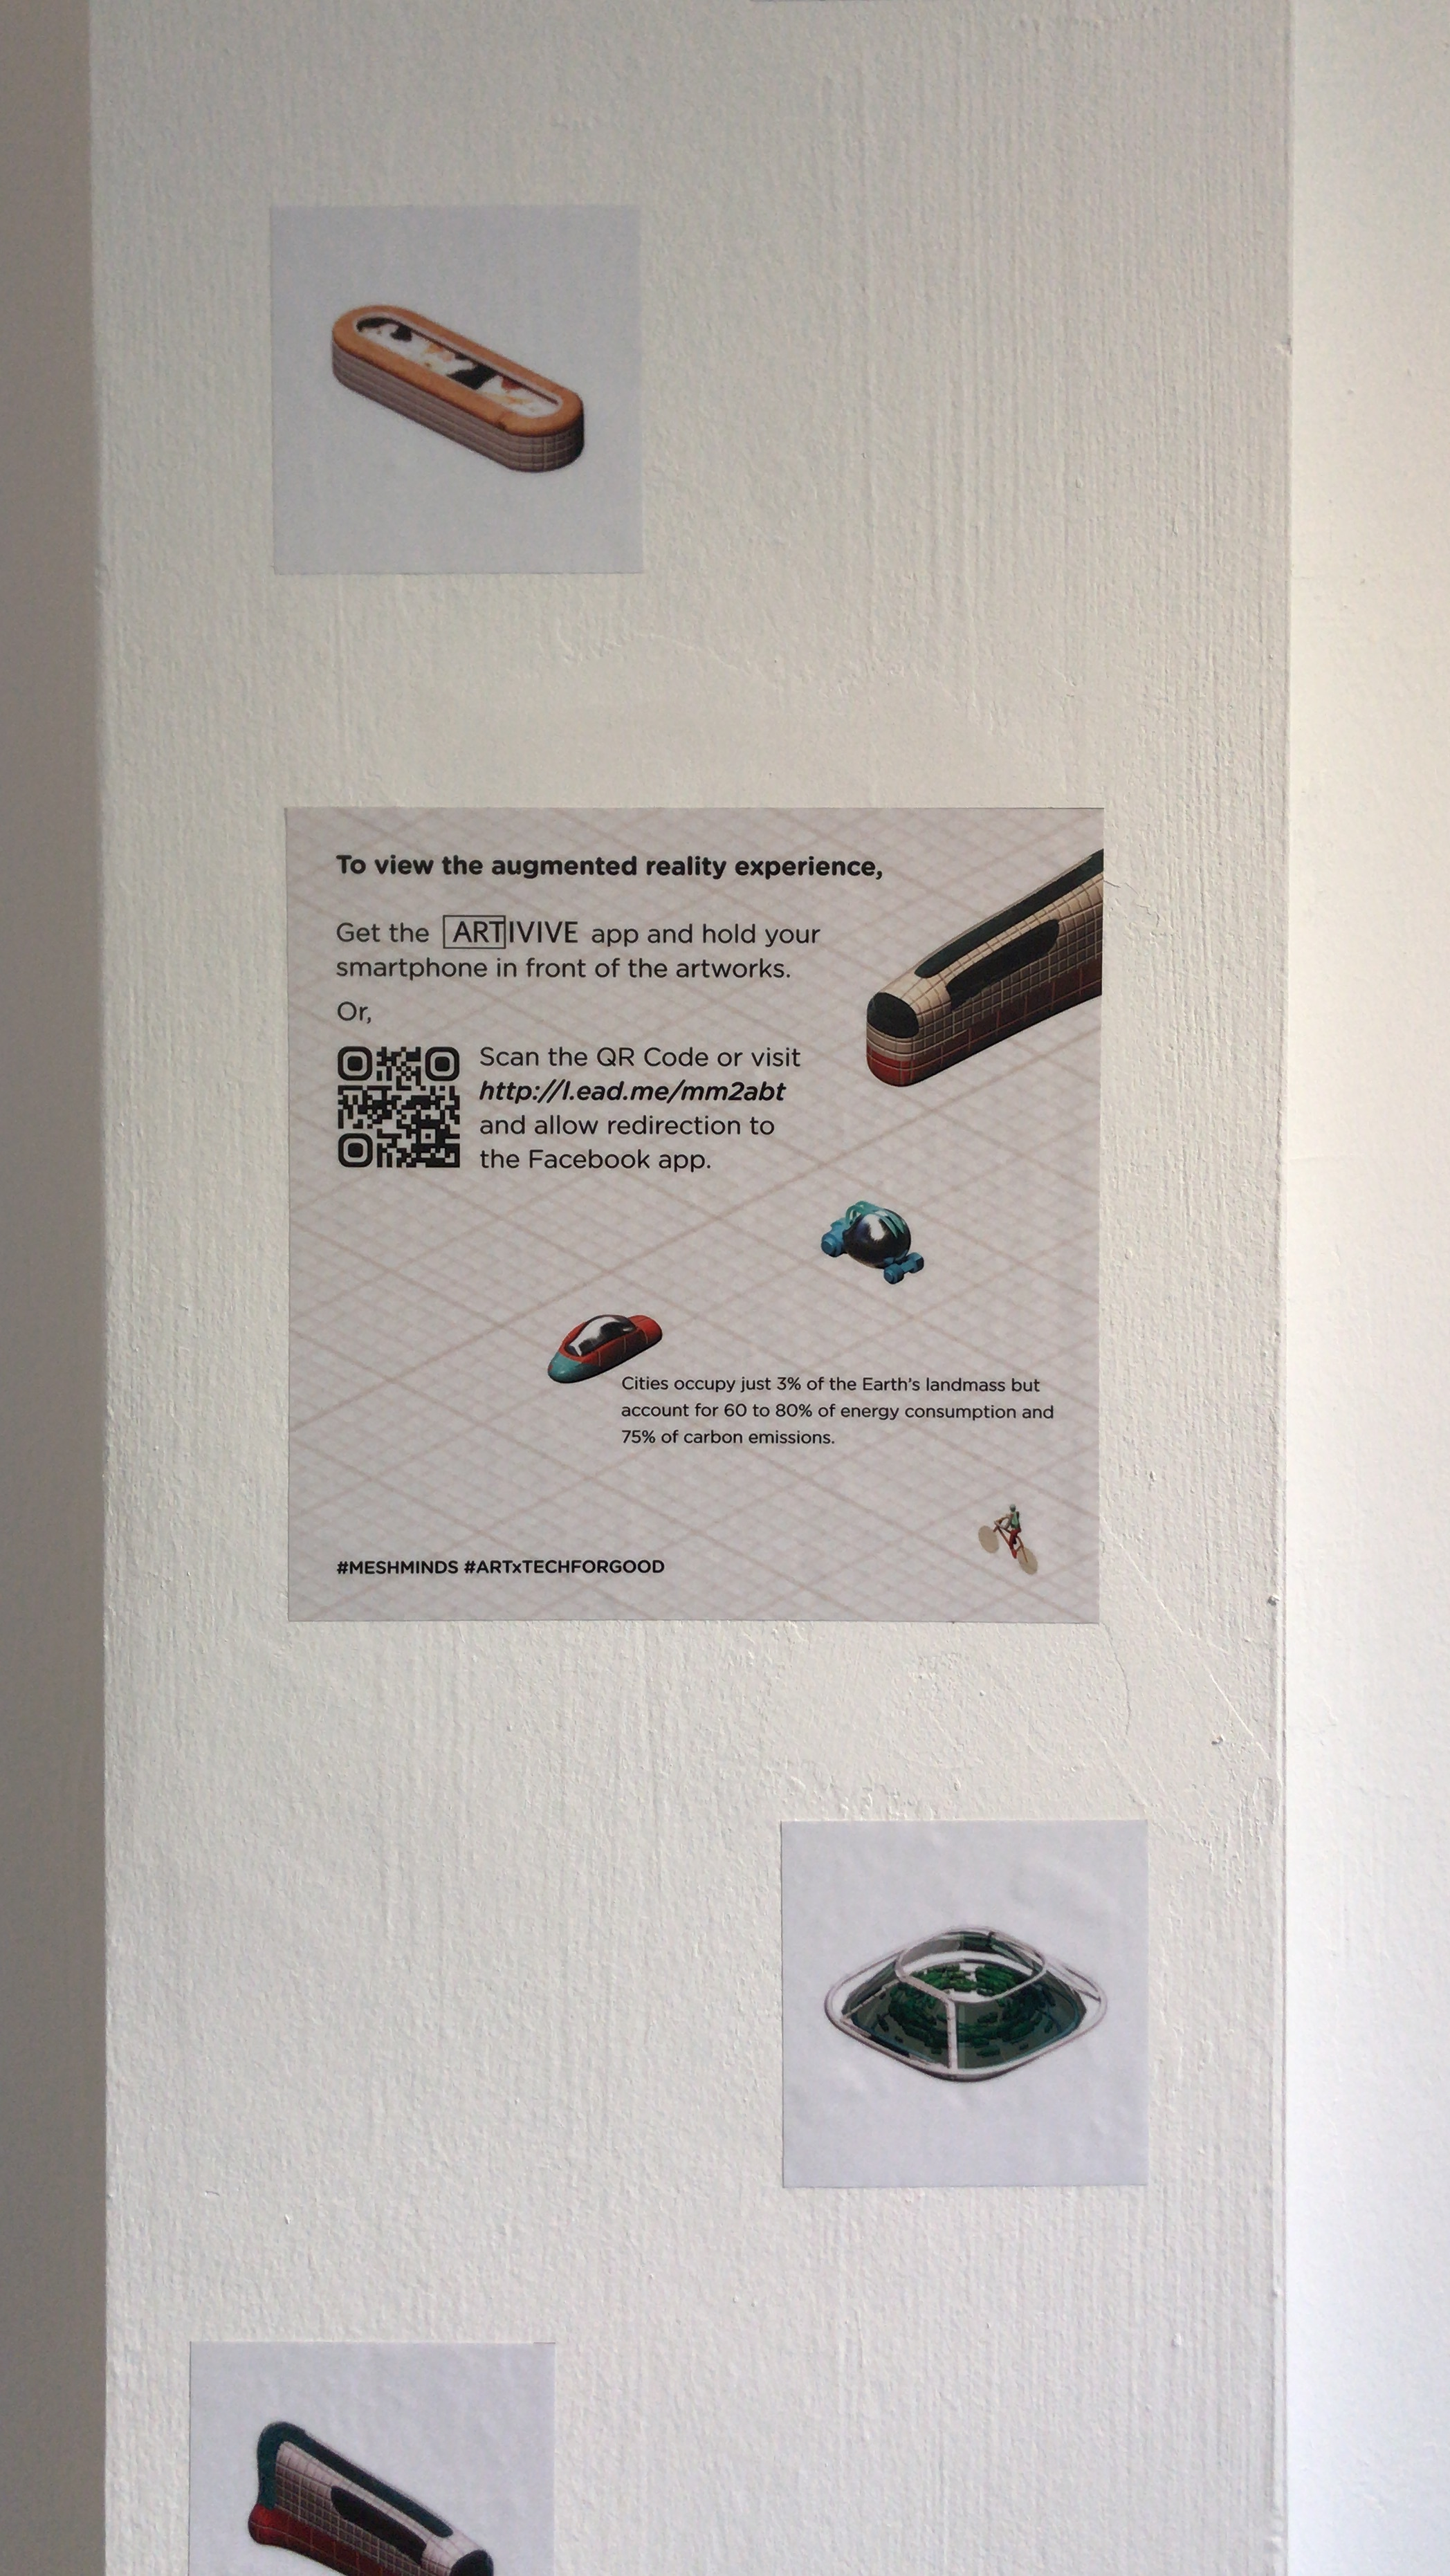 Exhibition text offering visitors an option between Facebook and Artivive to experience the AR art.